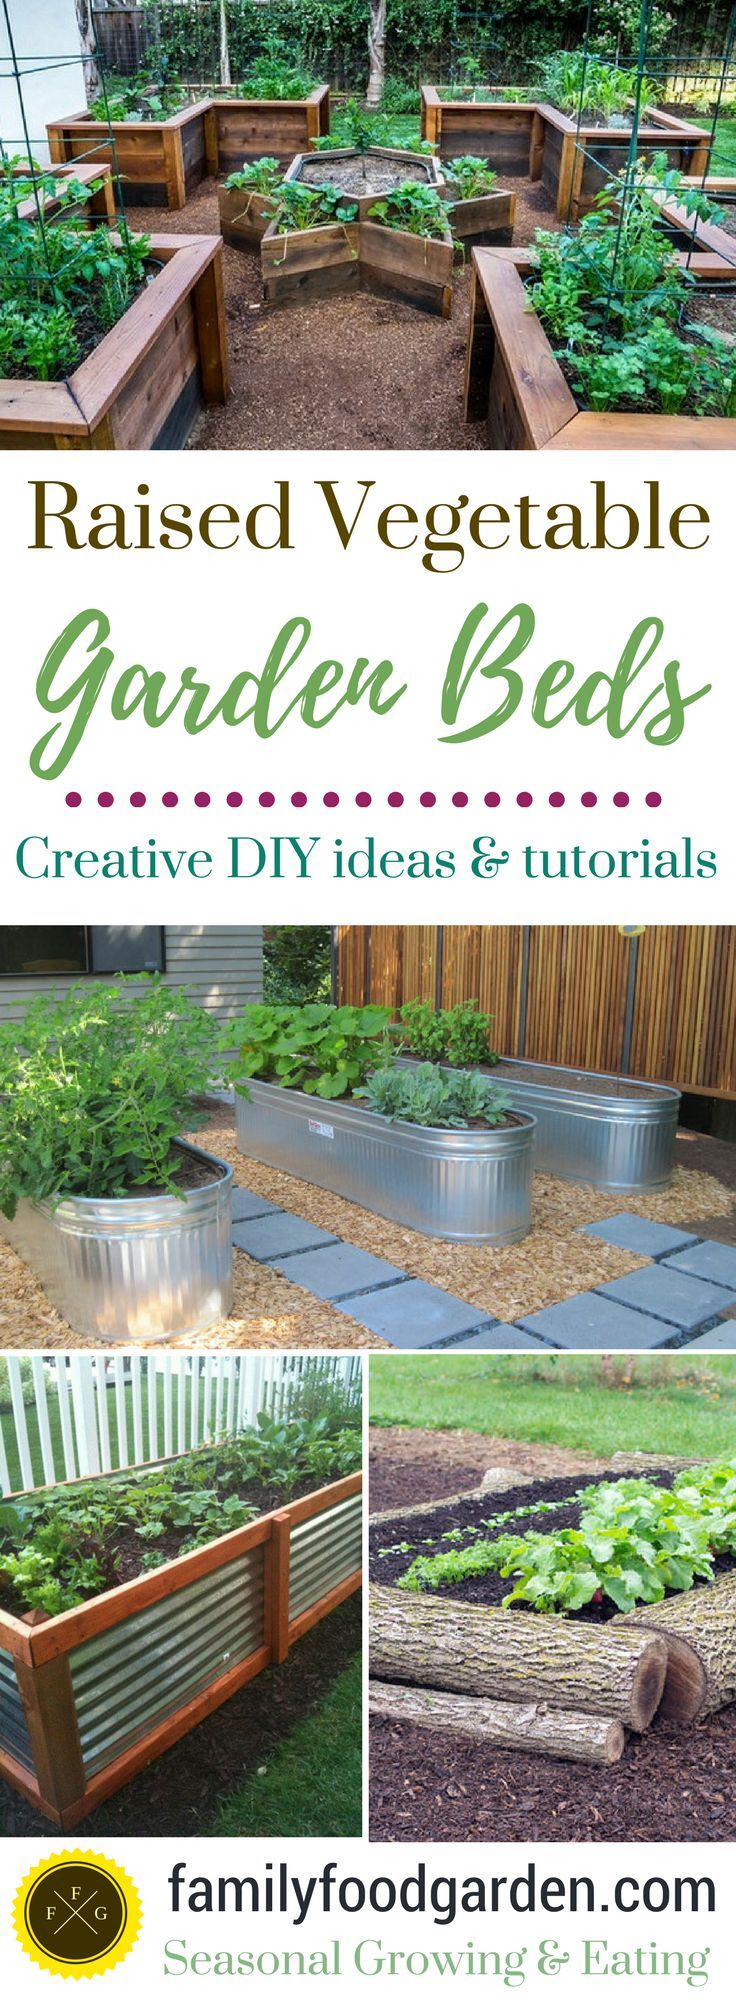 Raised garden beds add a lot of beauty to a garden. They're also excellent for drainage, warming up the soil faster in the springtime and a little higher for easier harvesting.They can make your garden look amazing! There are a many designs &materials you can usecreate a raised vegetable ga